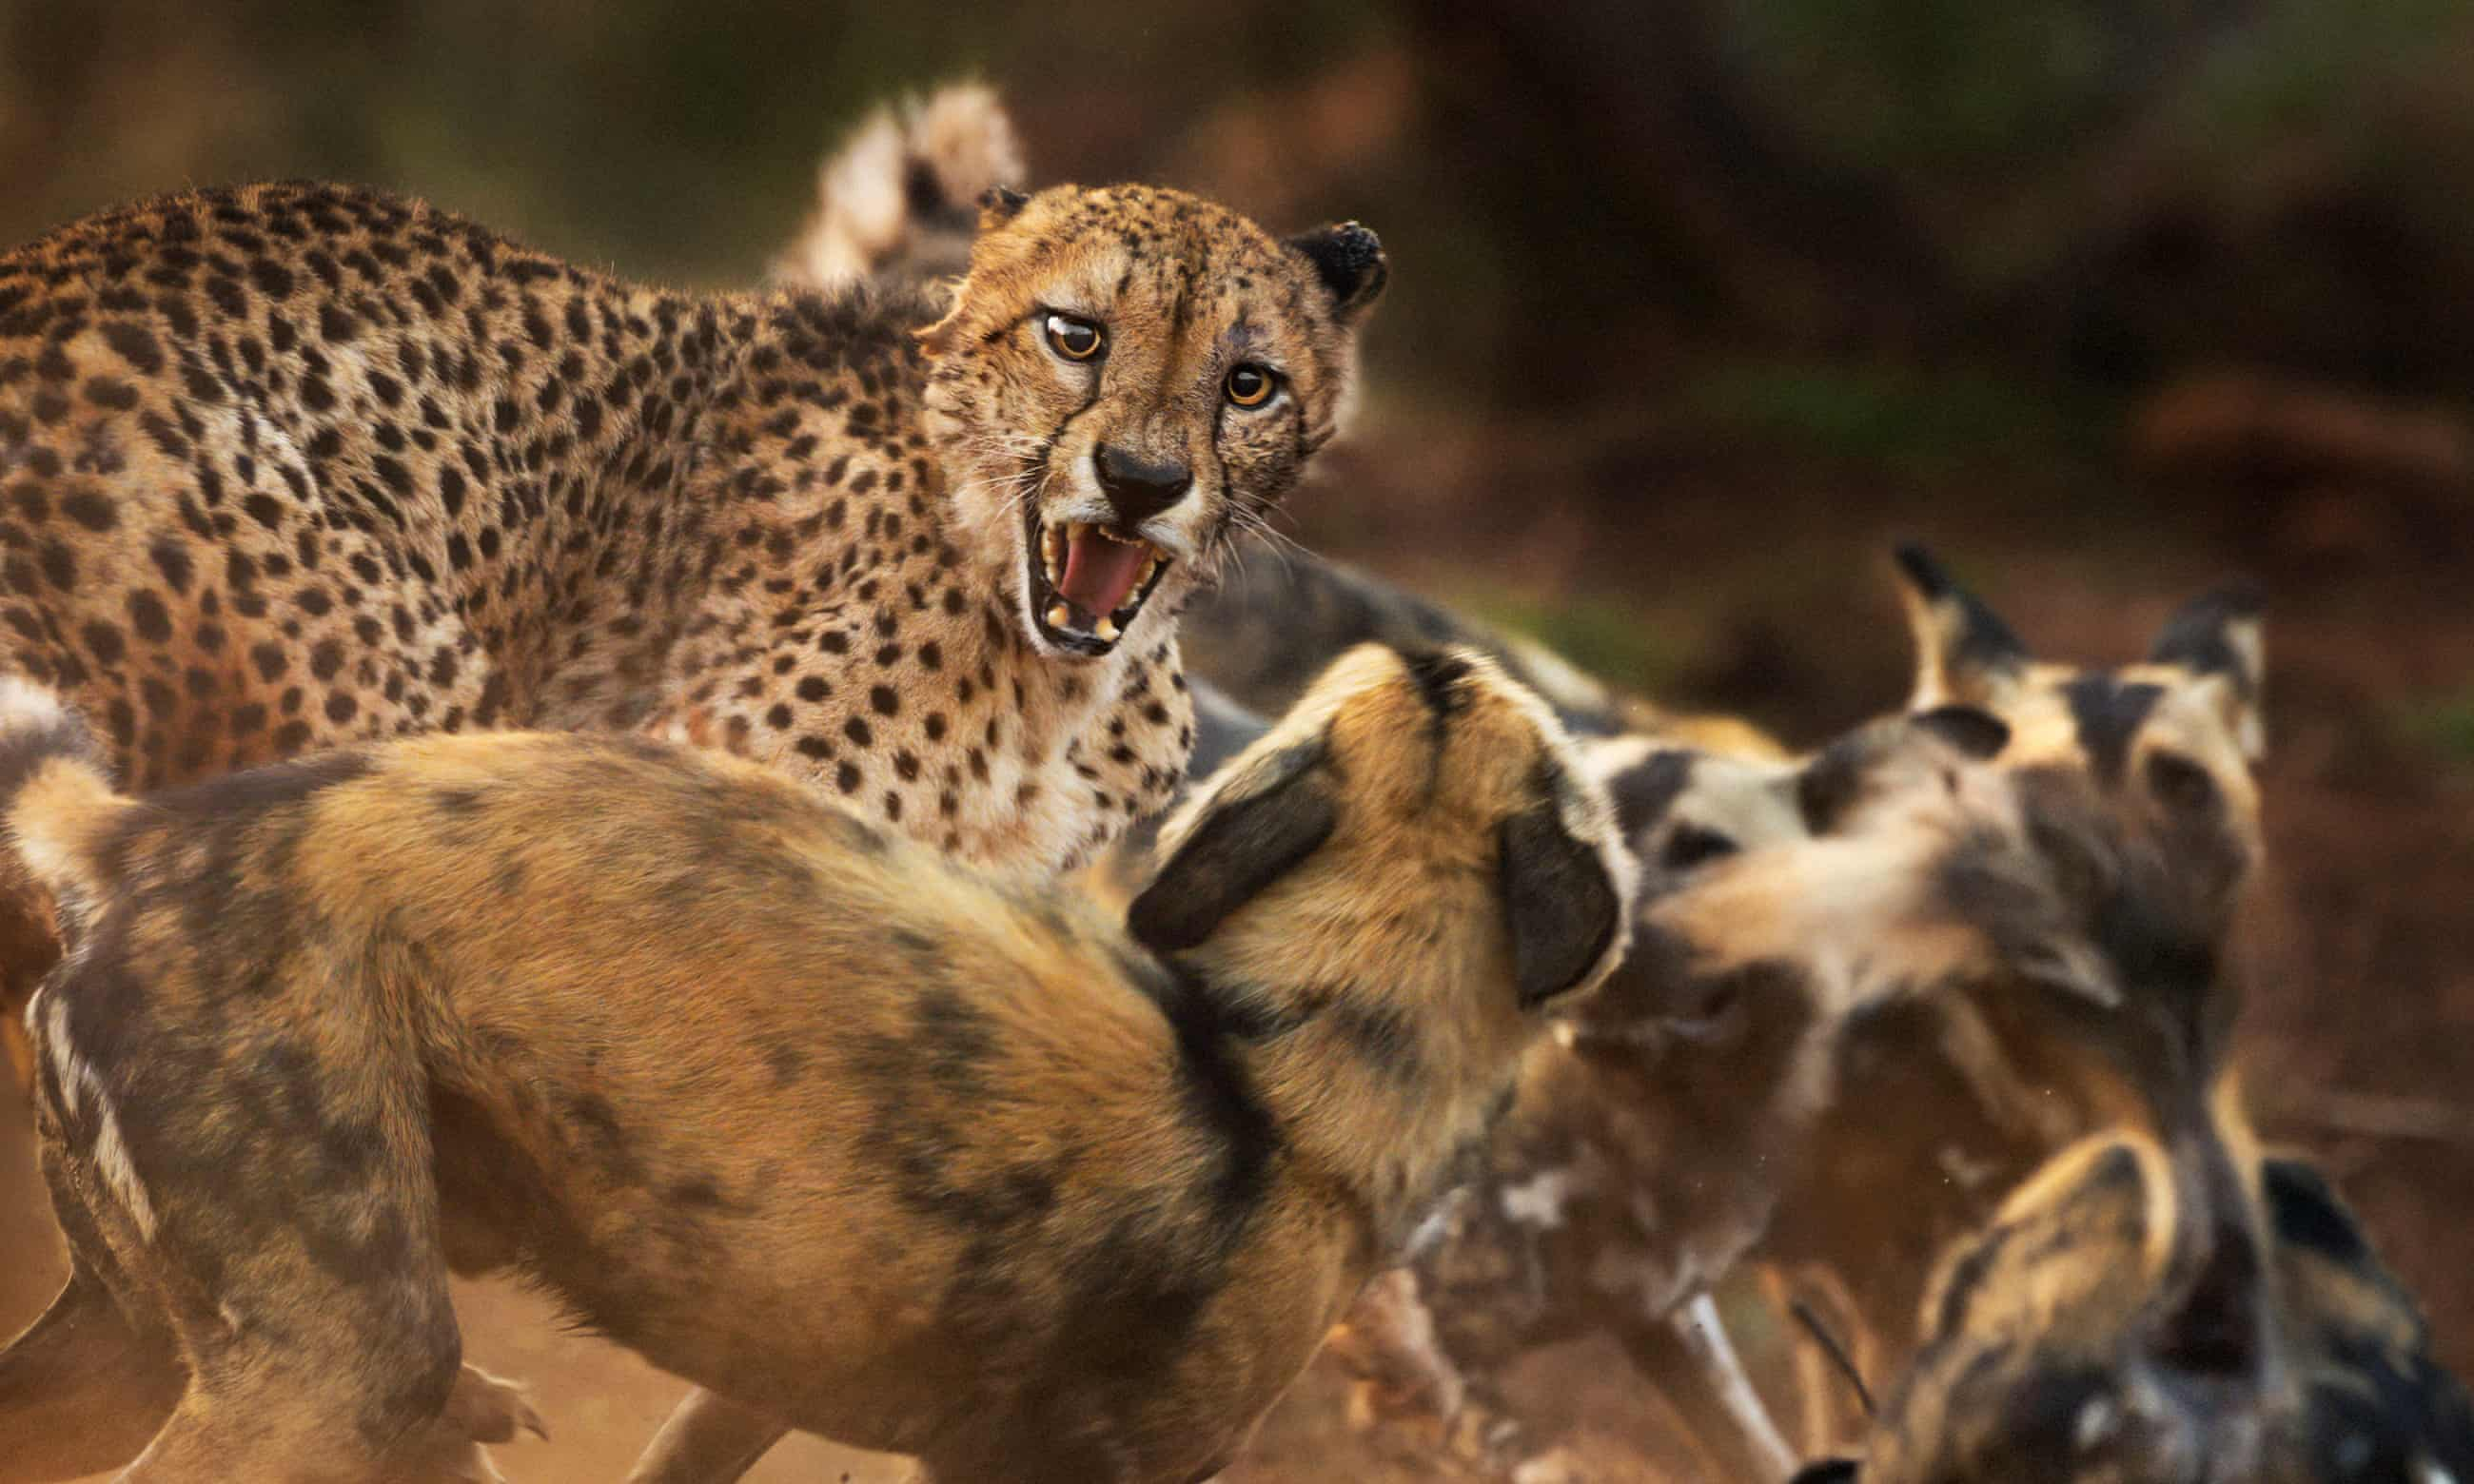 Wildlife photographer of the year – highly commended images